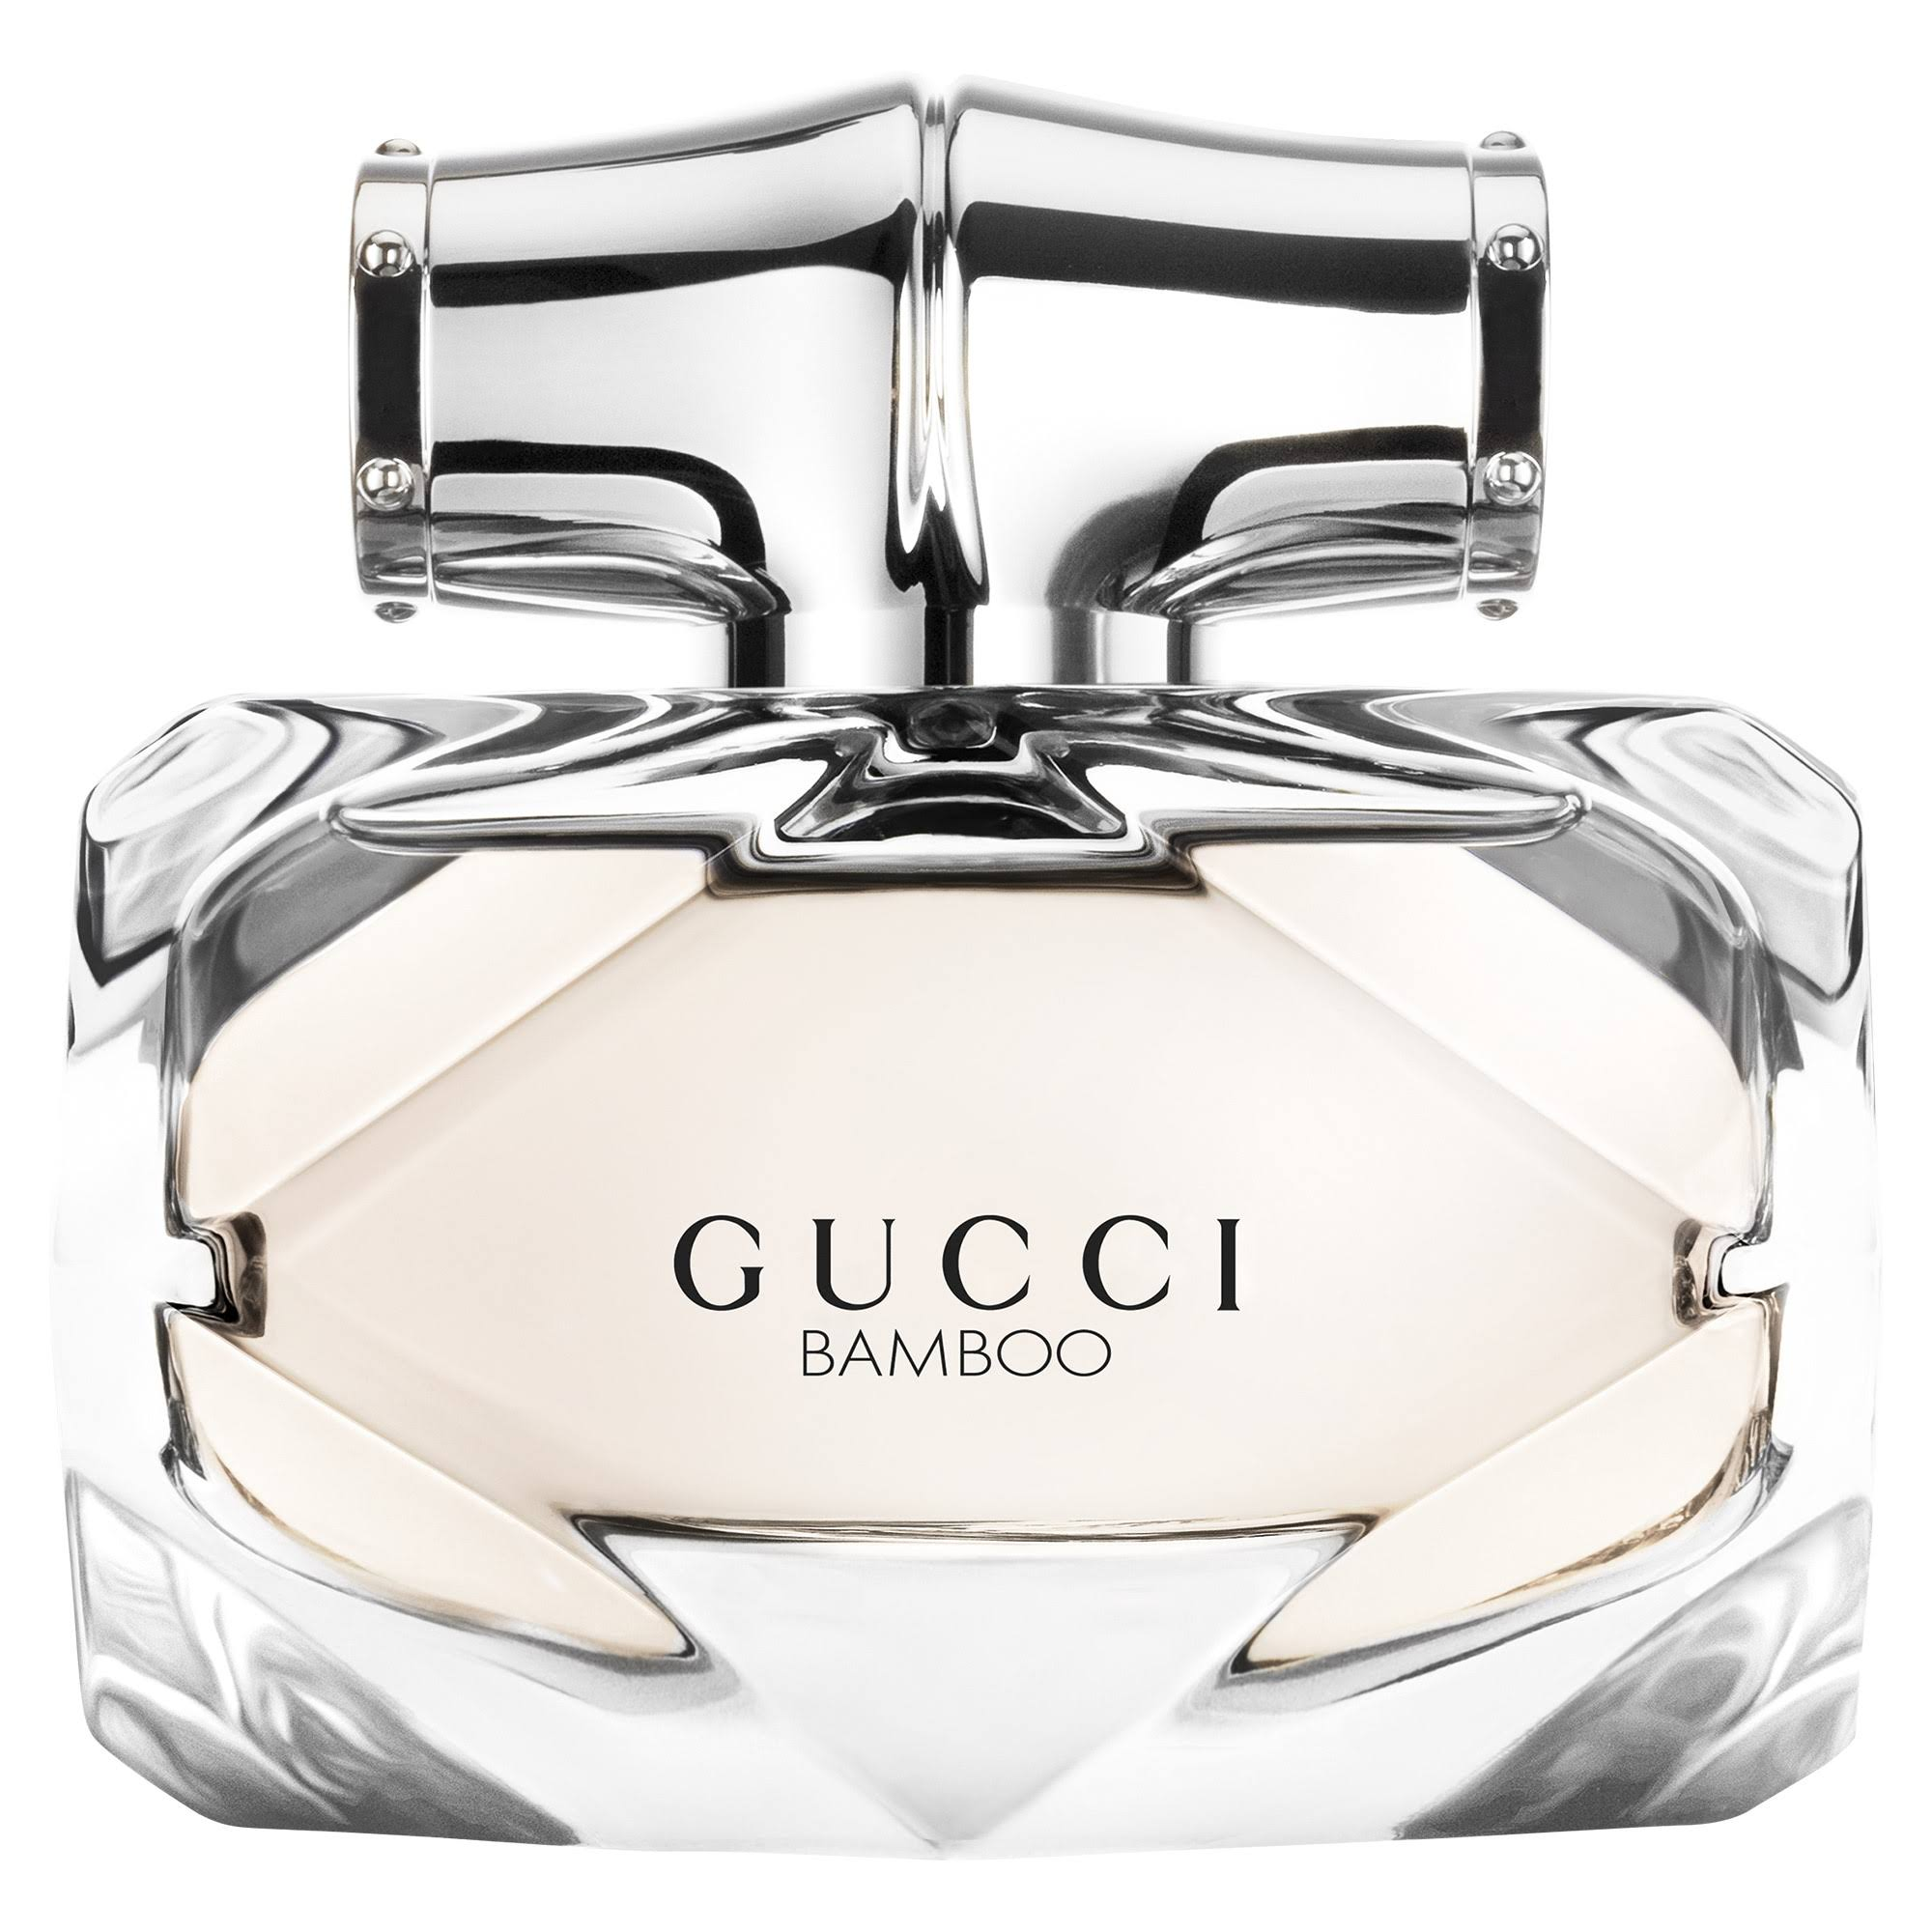 Gucci Bamboo Eau De Toilette 50ml Spray